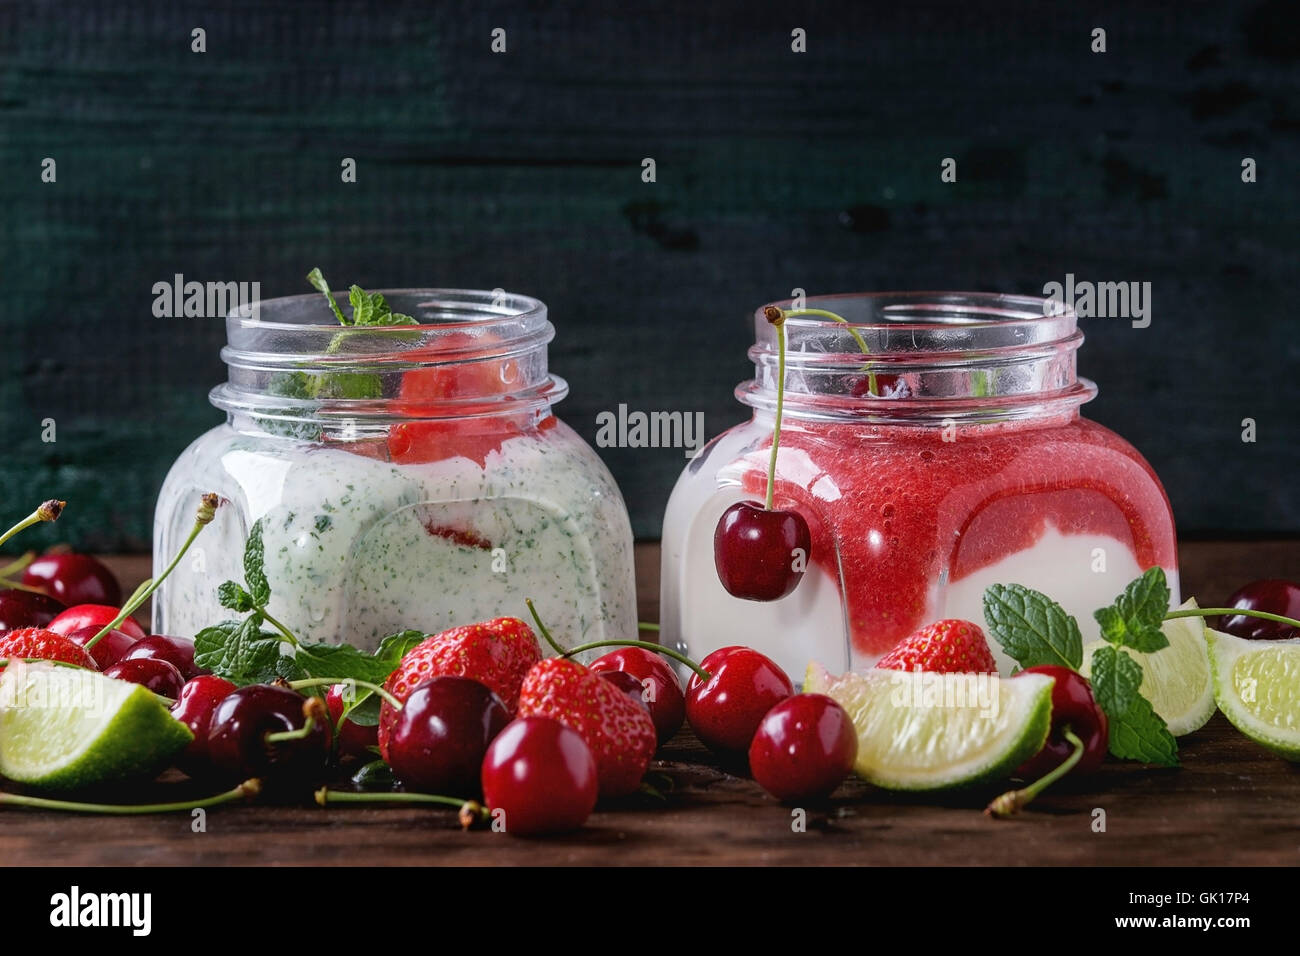 Two Square glass jars with homemade yogurt with mint, strawberry puree, cherry and chia seeds served with fresh Stock Photo